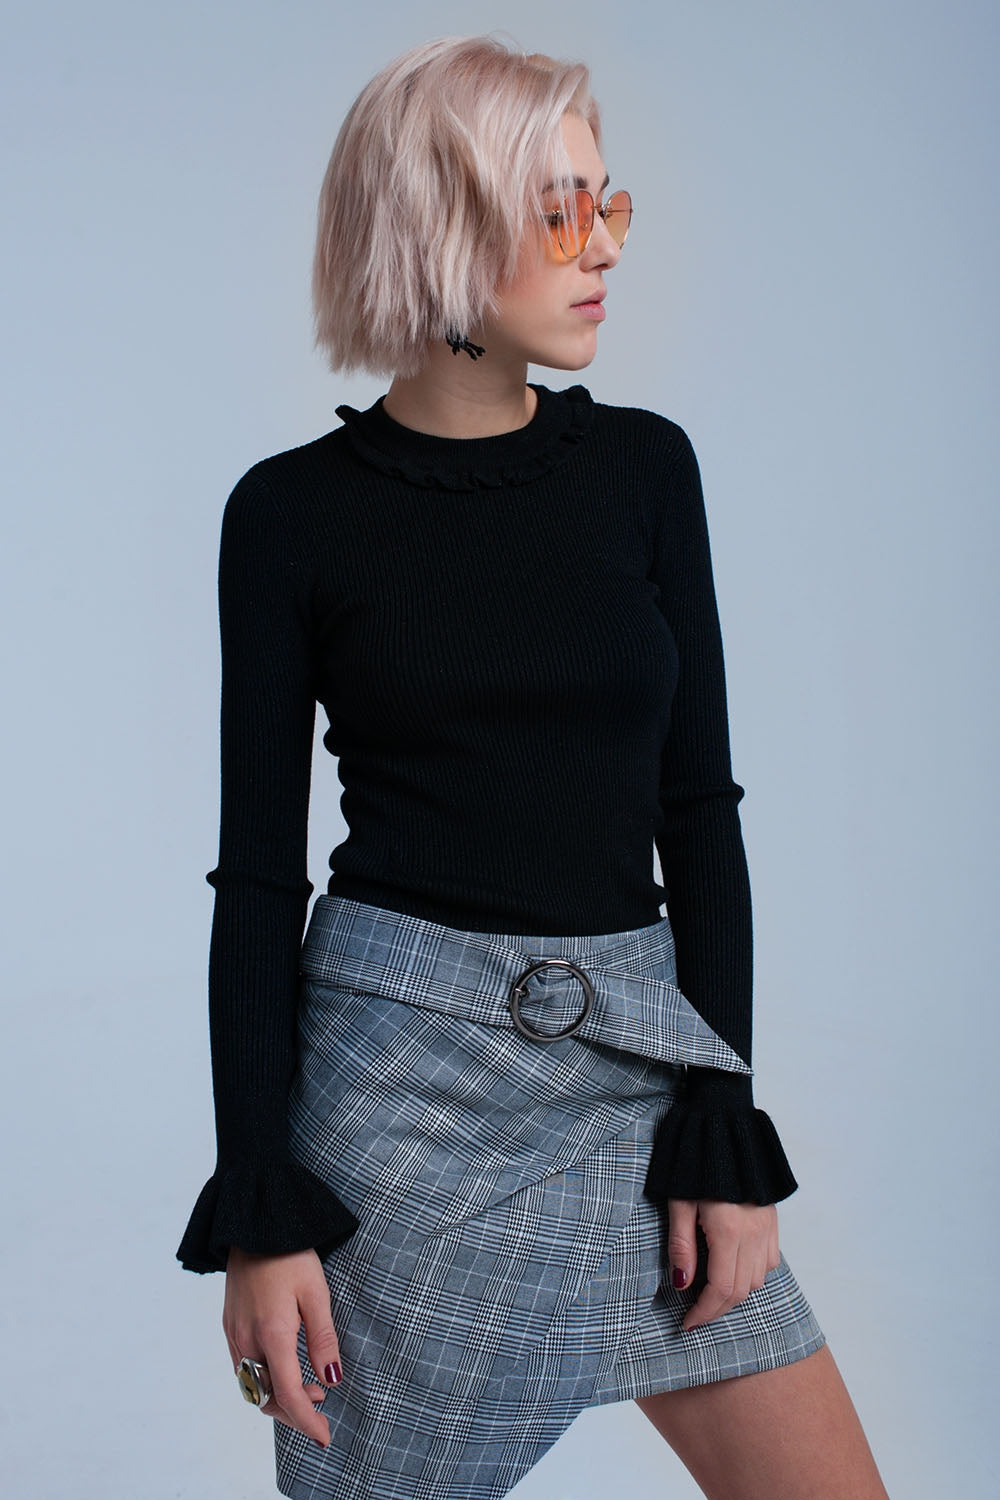 Black shiny sweater with ruffle